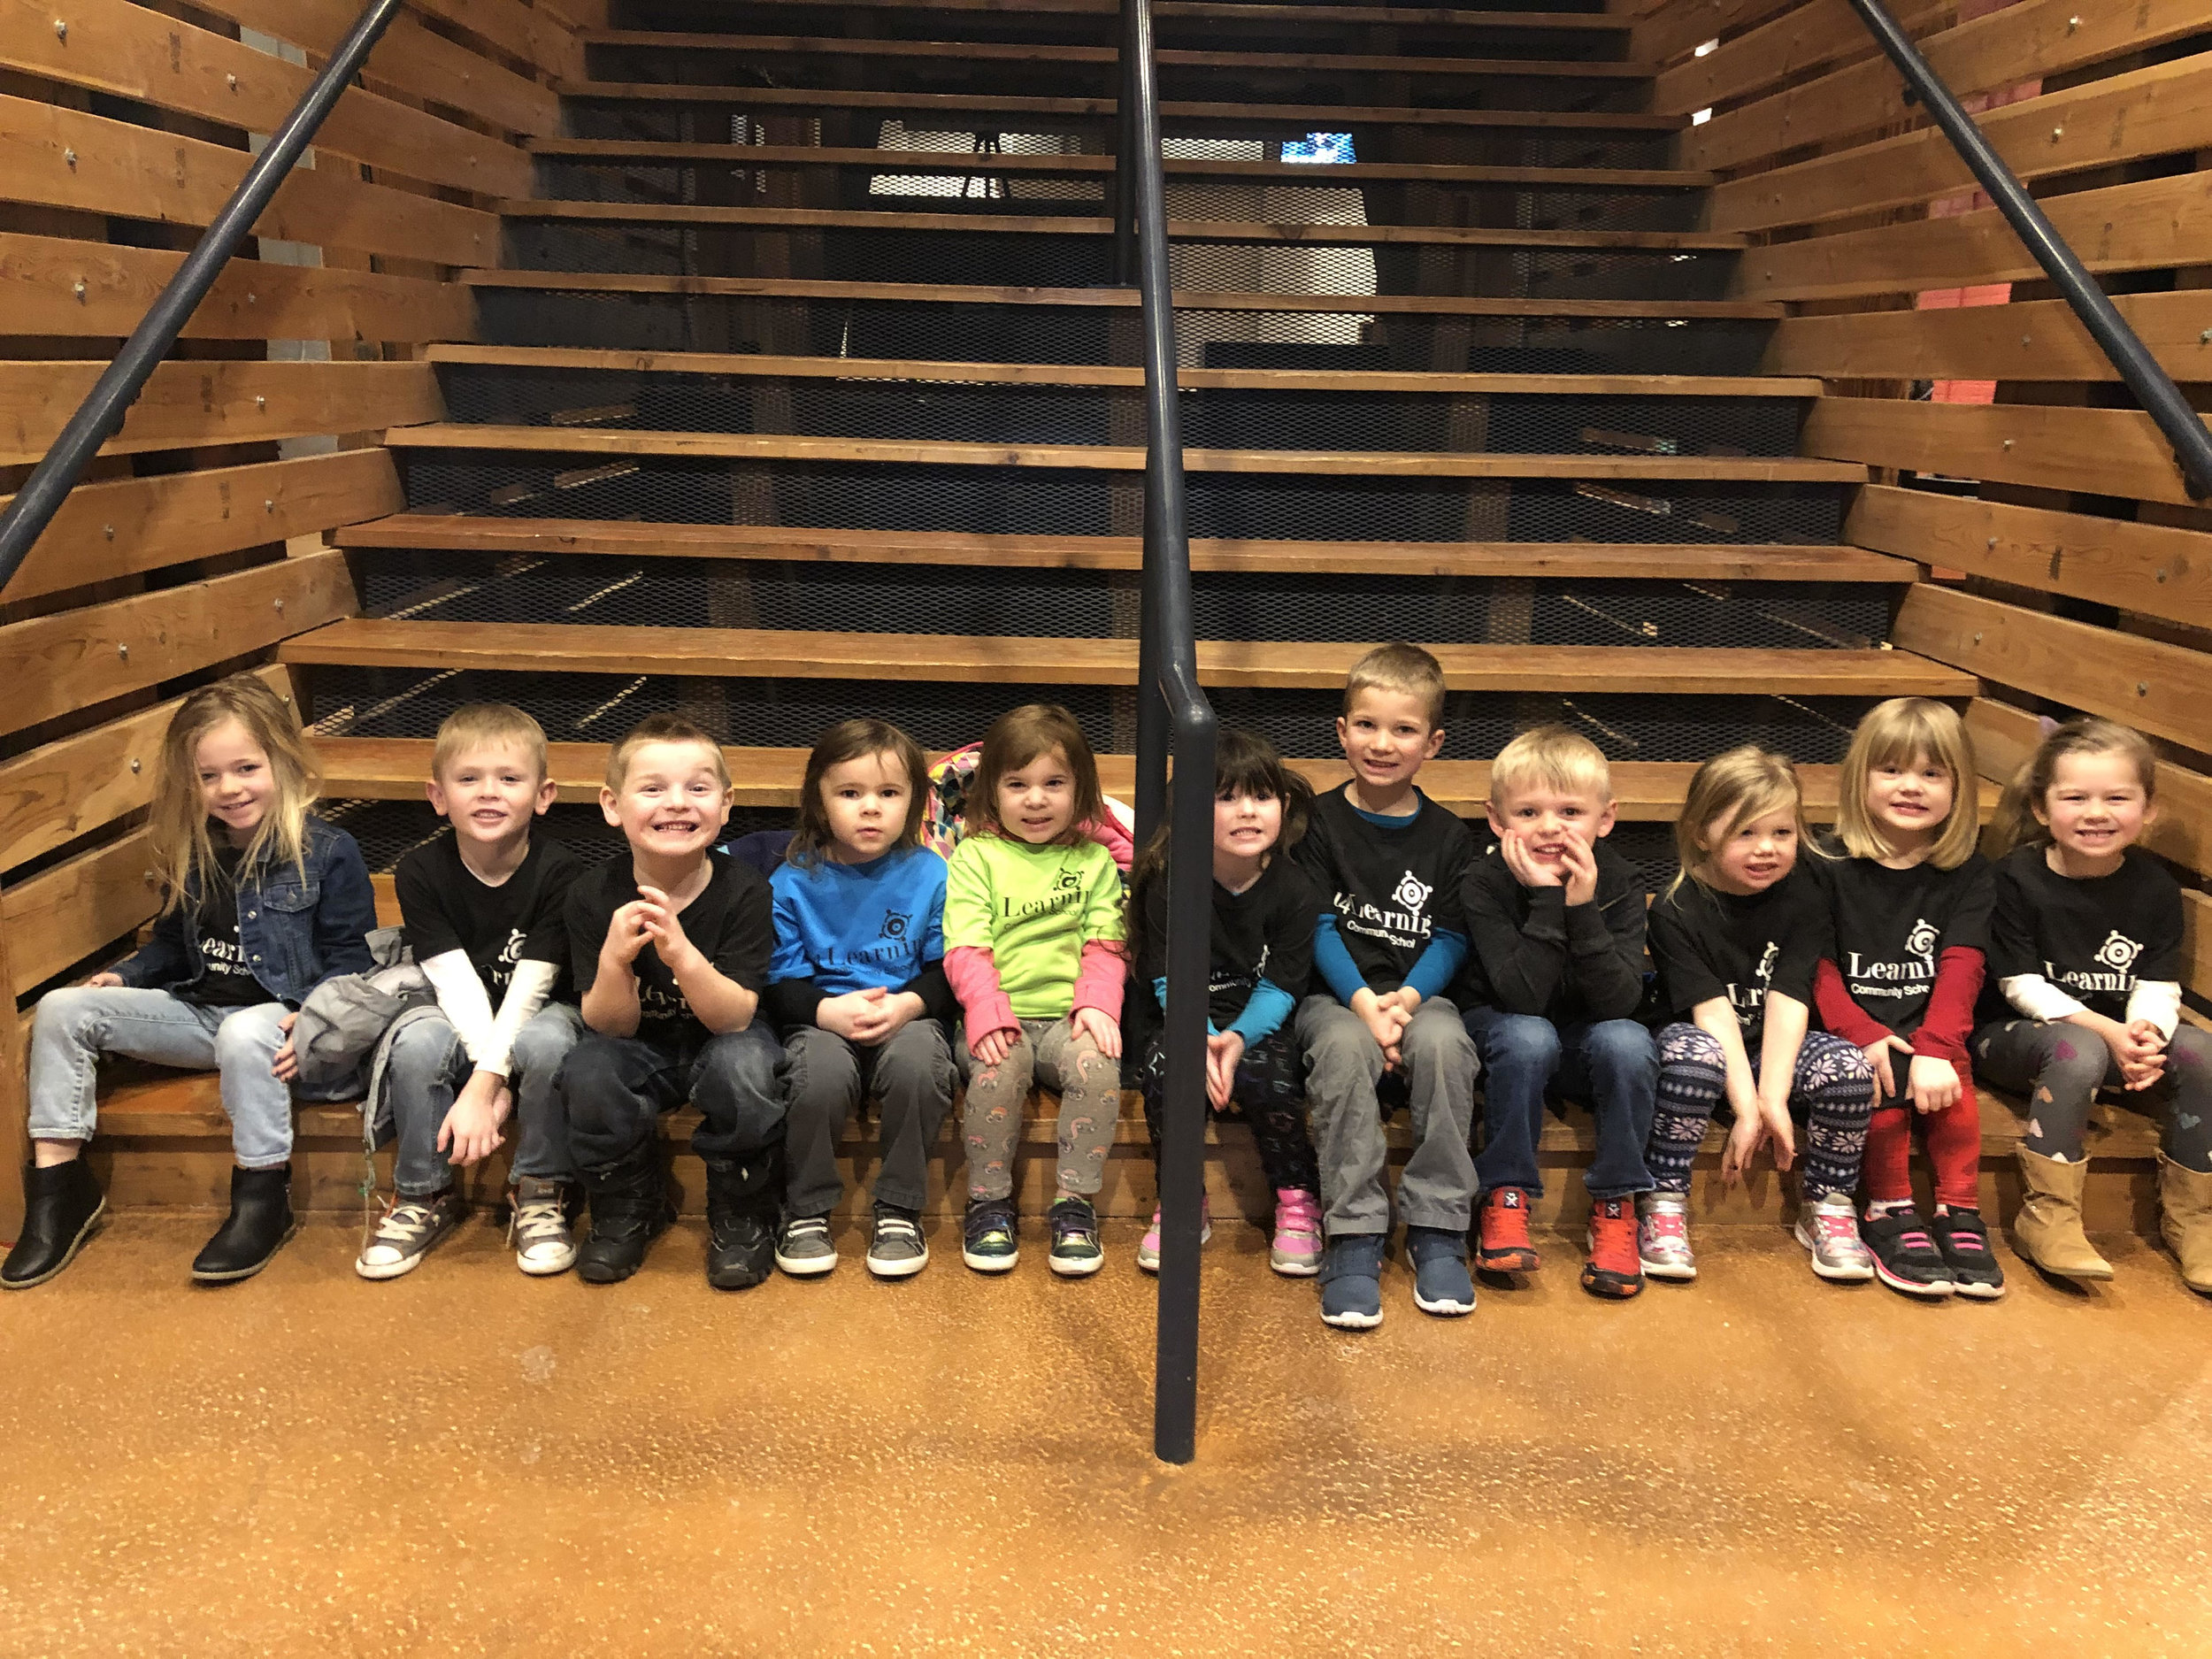 They all enjoyed the science show at the Schauer Arts Center